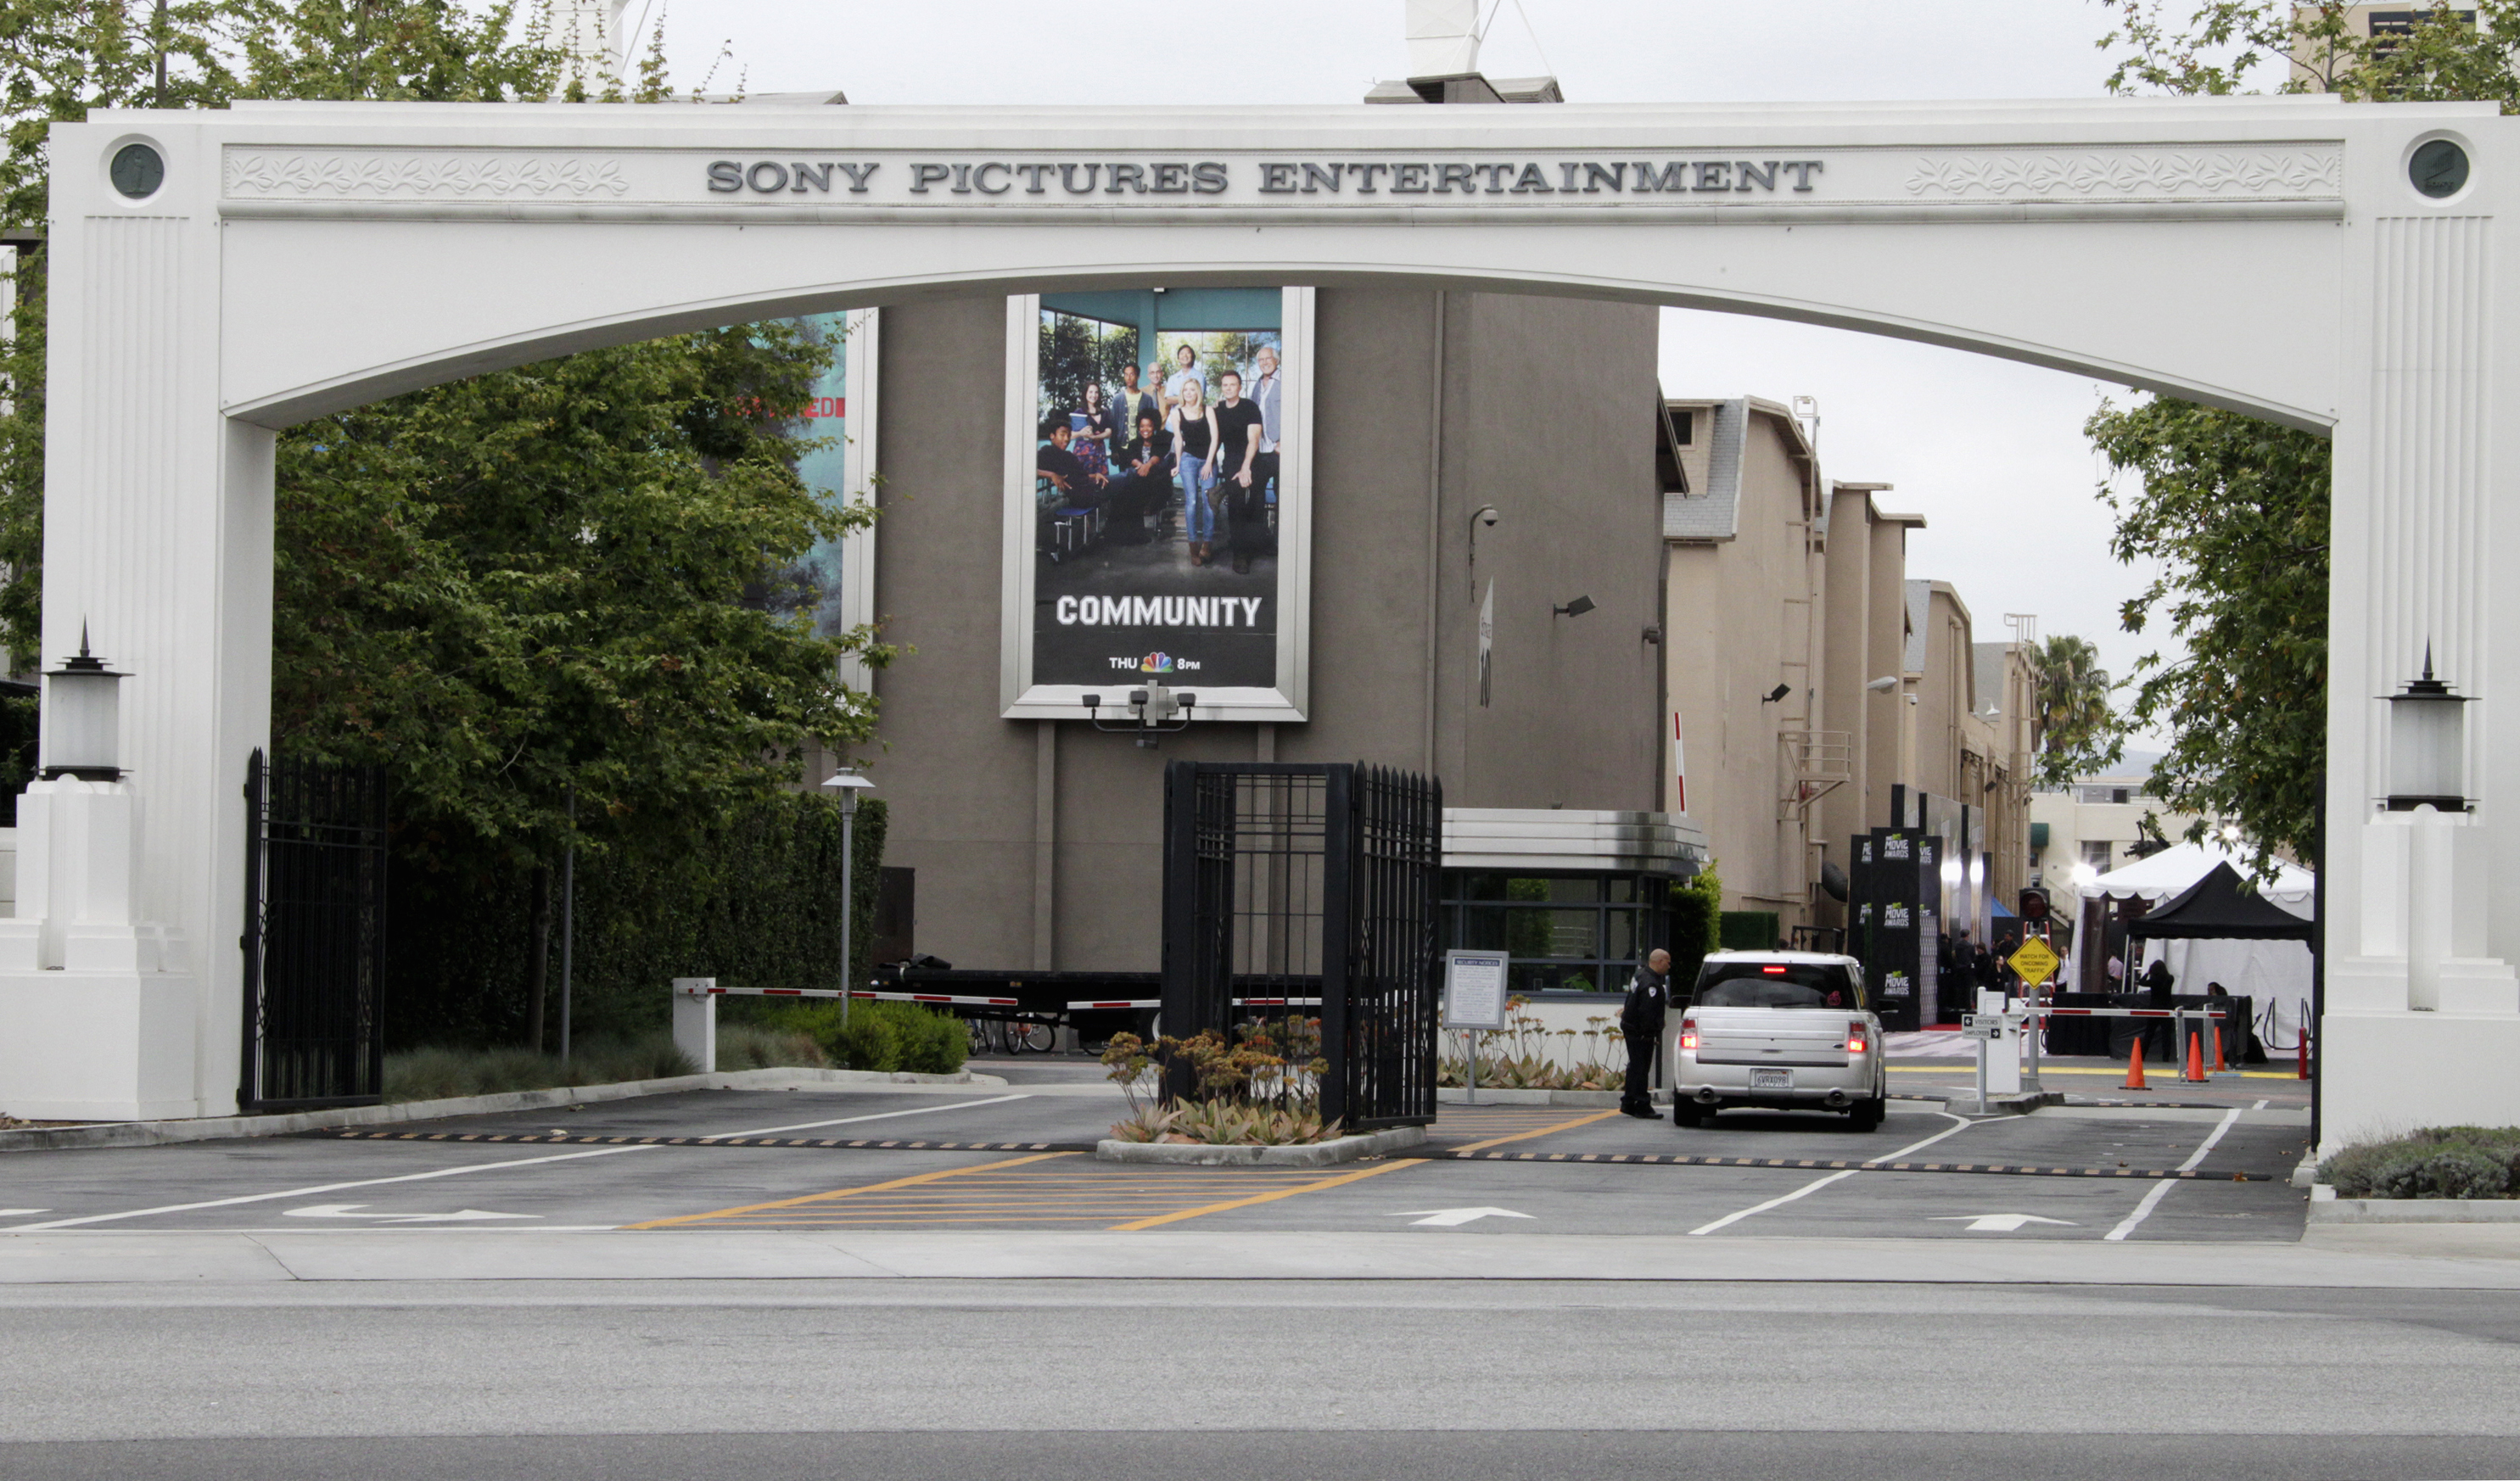 An entrance gate to Sony Pictures Entertainment at the Sony Pictures lot is pictured in Culver City, Calif., on April 14, 2013